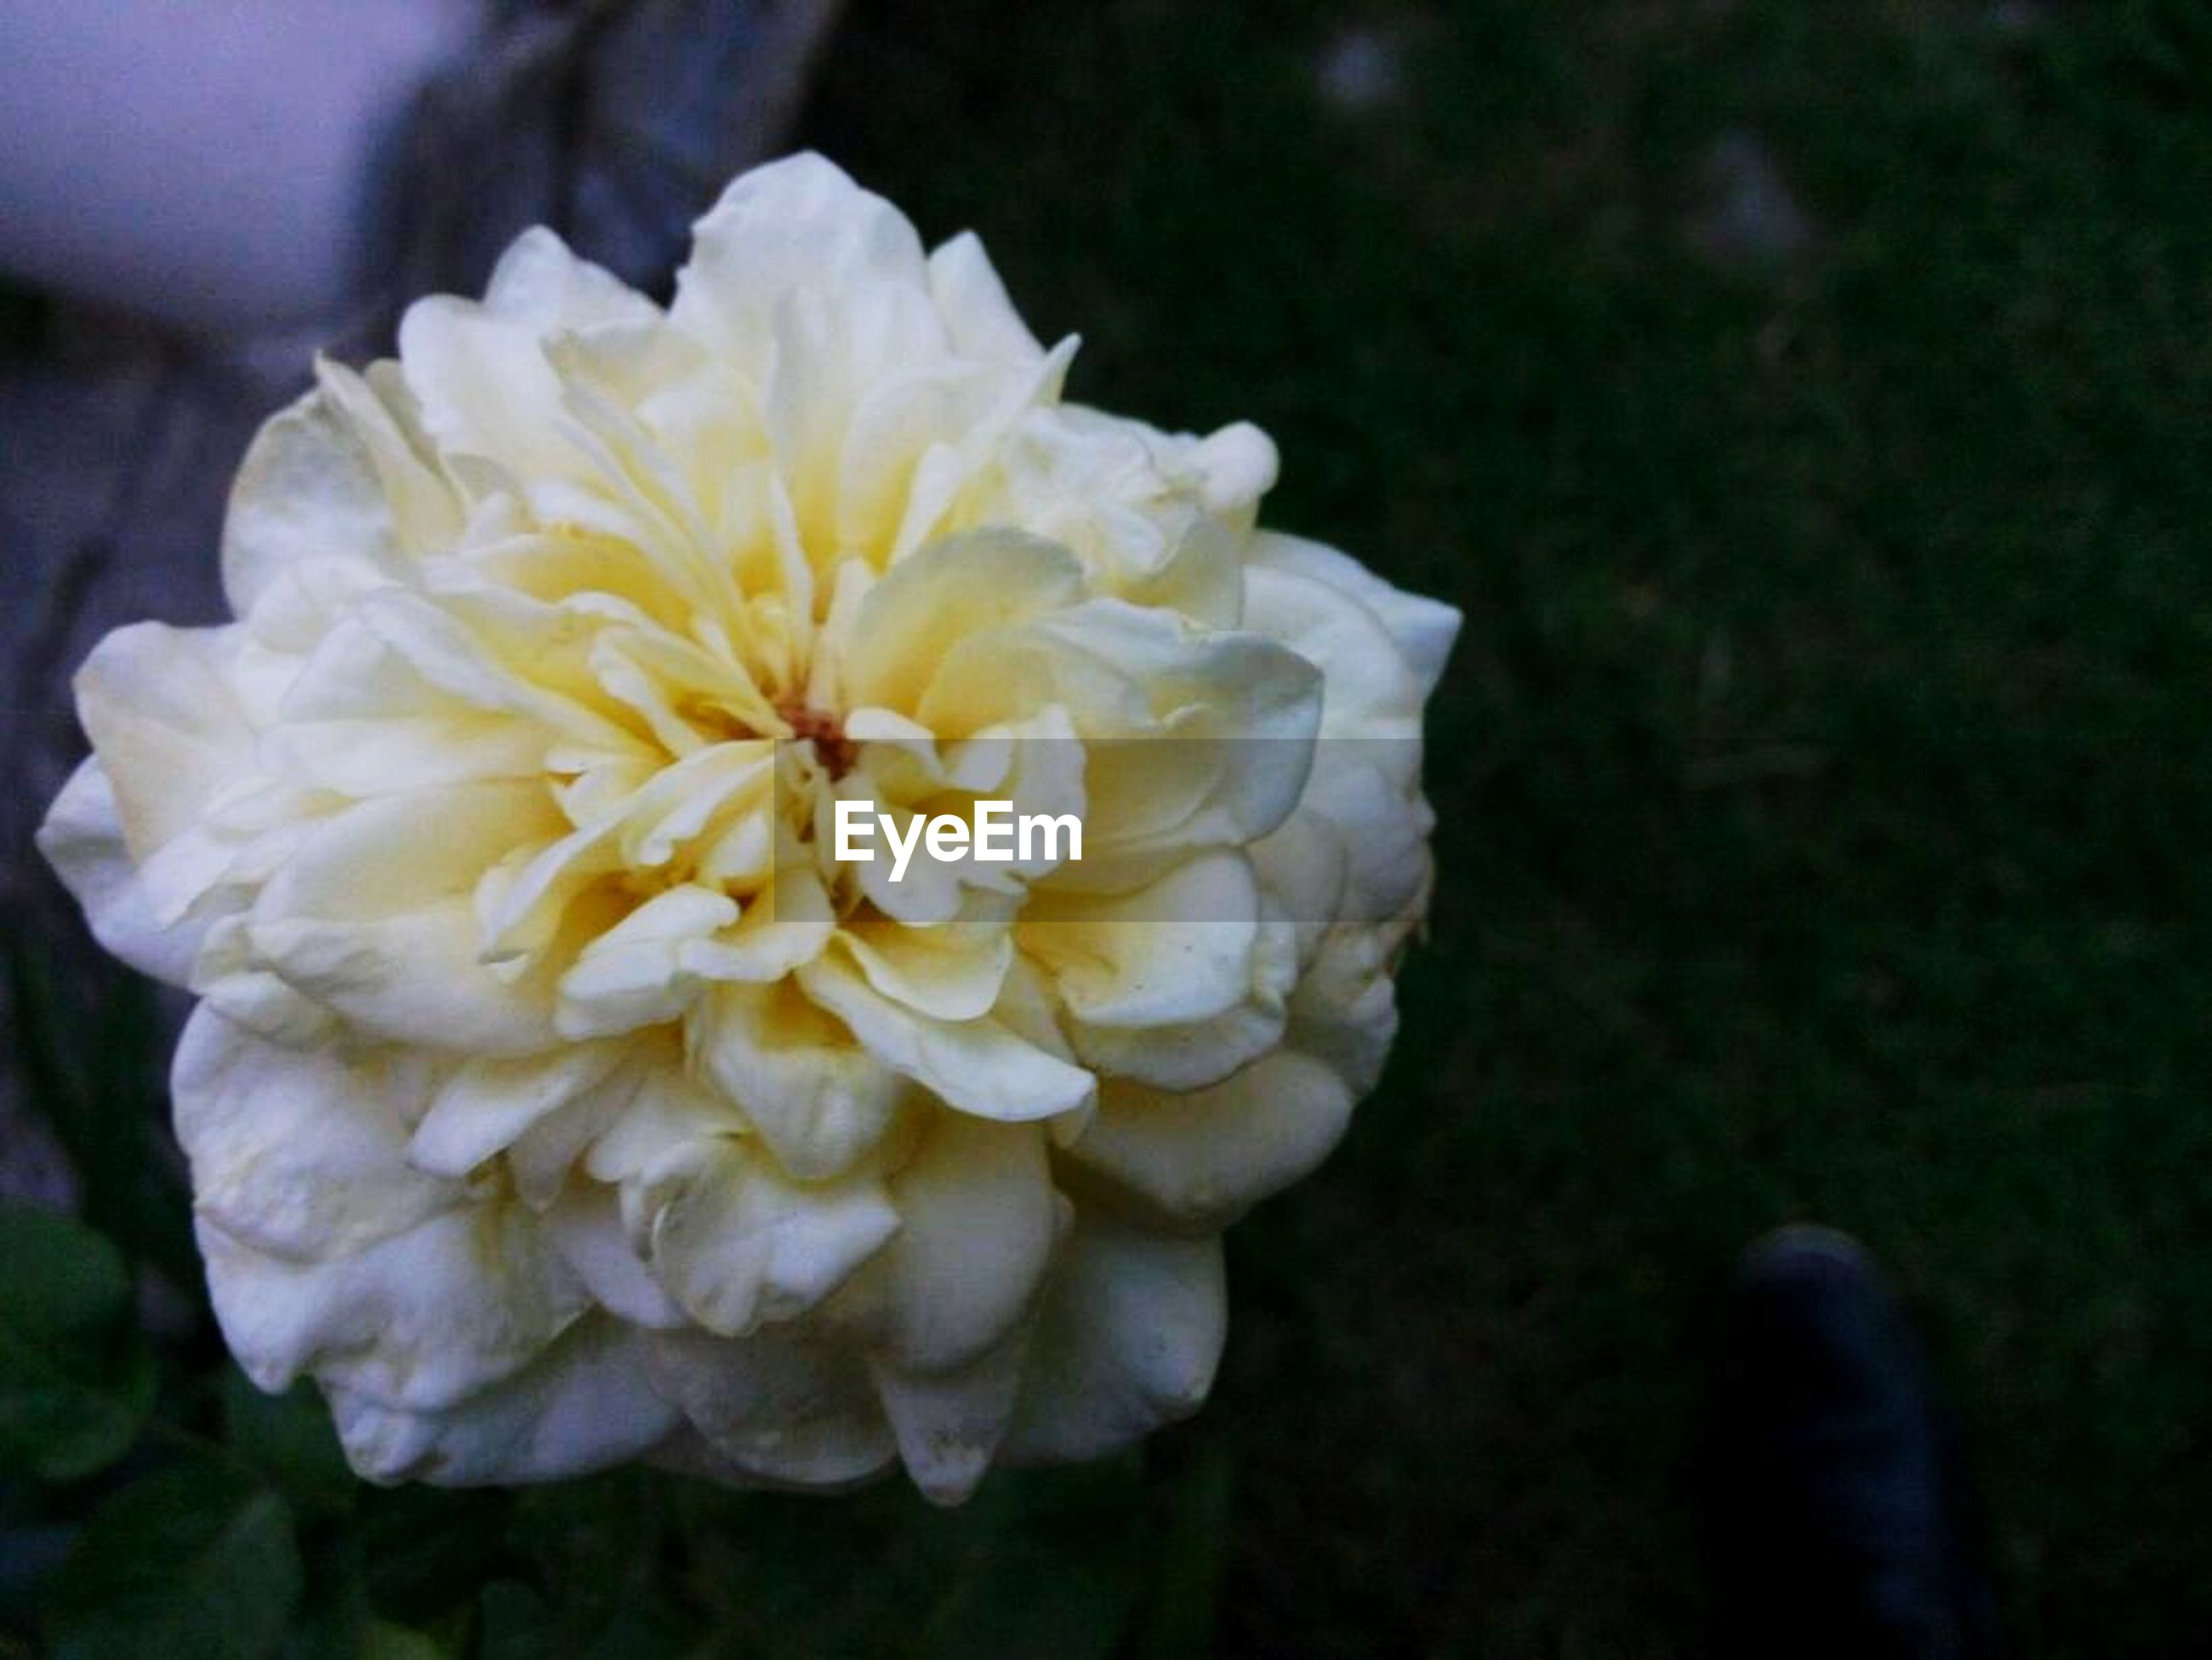 flower, petal, fragility, freshness, flower head, growth, beauty in nature, close-up, focus on foreground, blooming, nature, white color, plant, single flower, in bloom, yellow, selective focus, outdoors, park - man made space, blossom